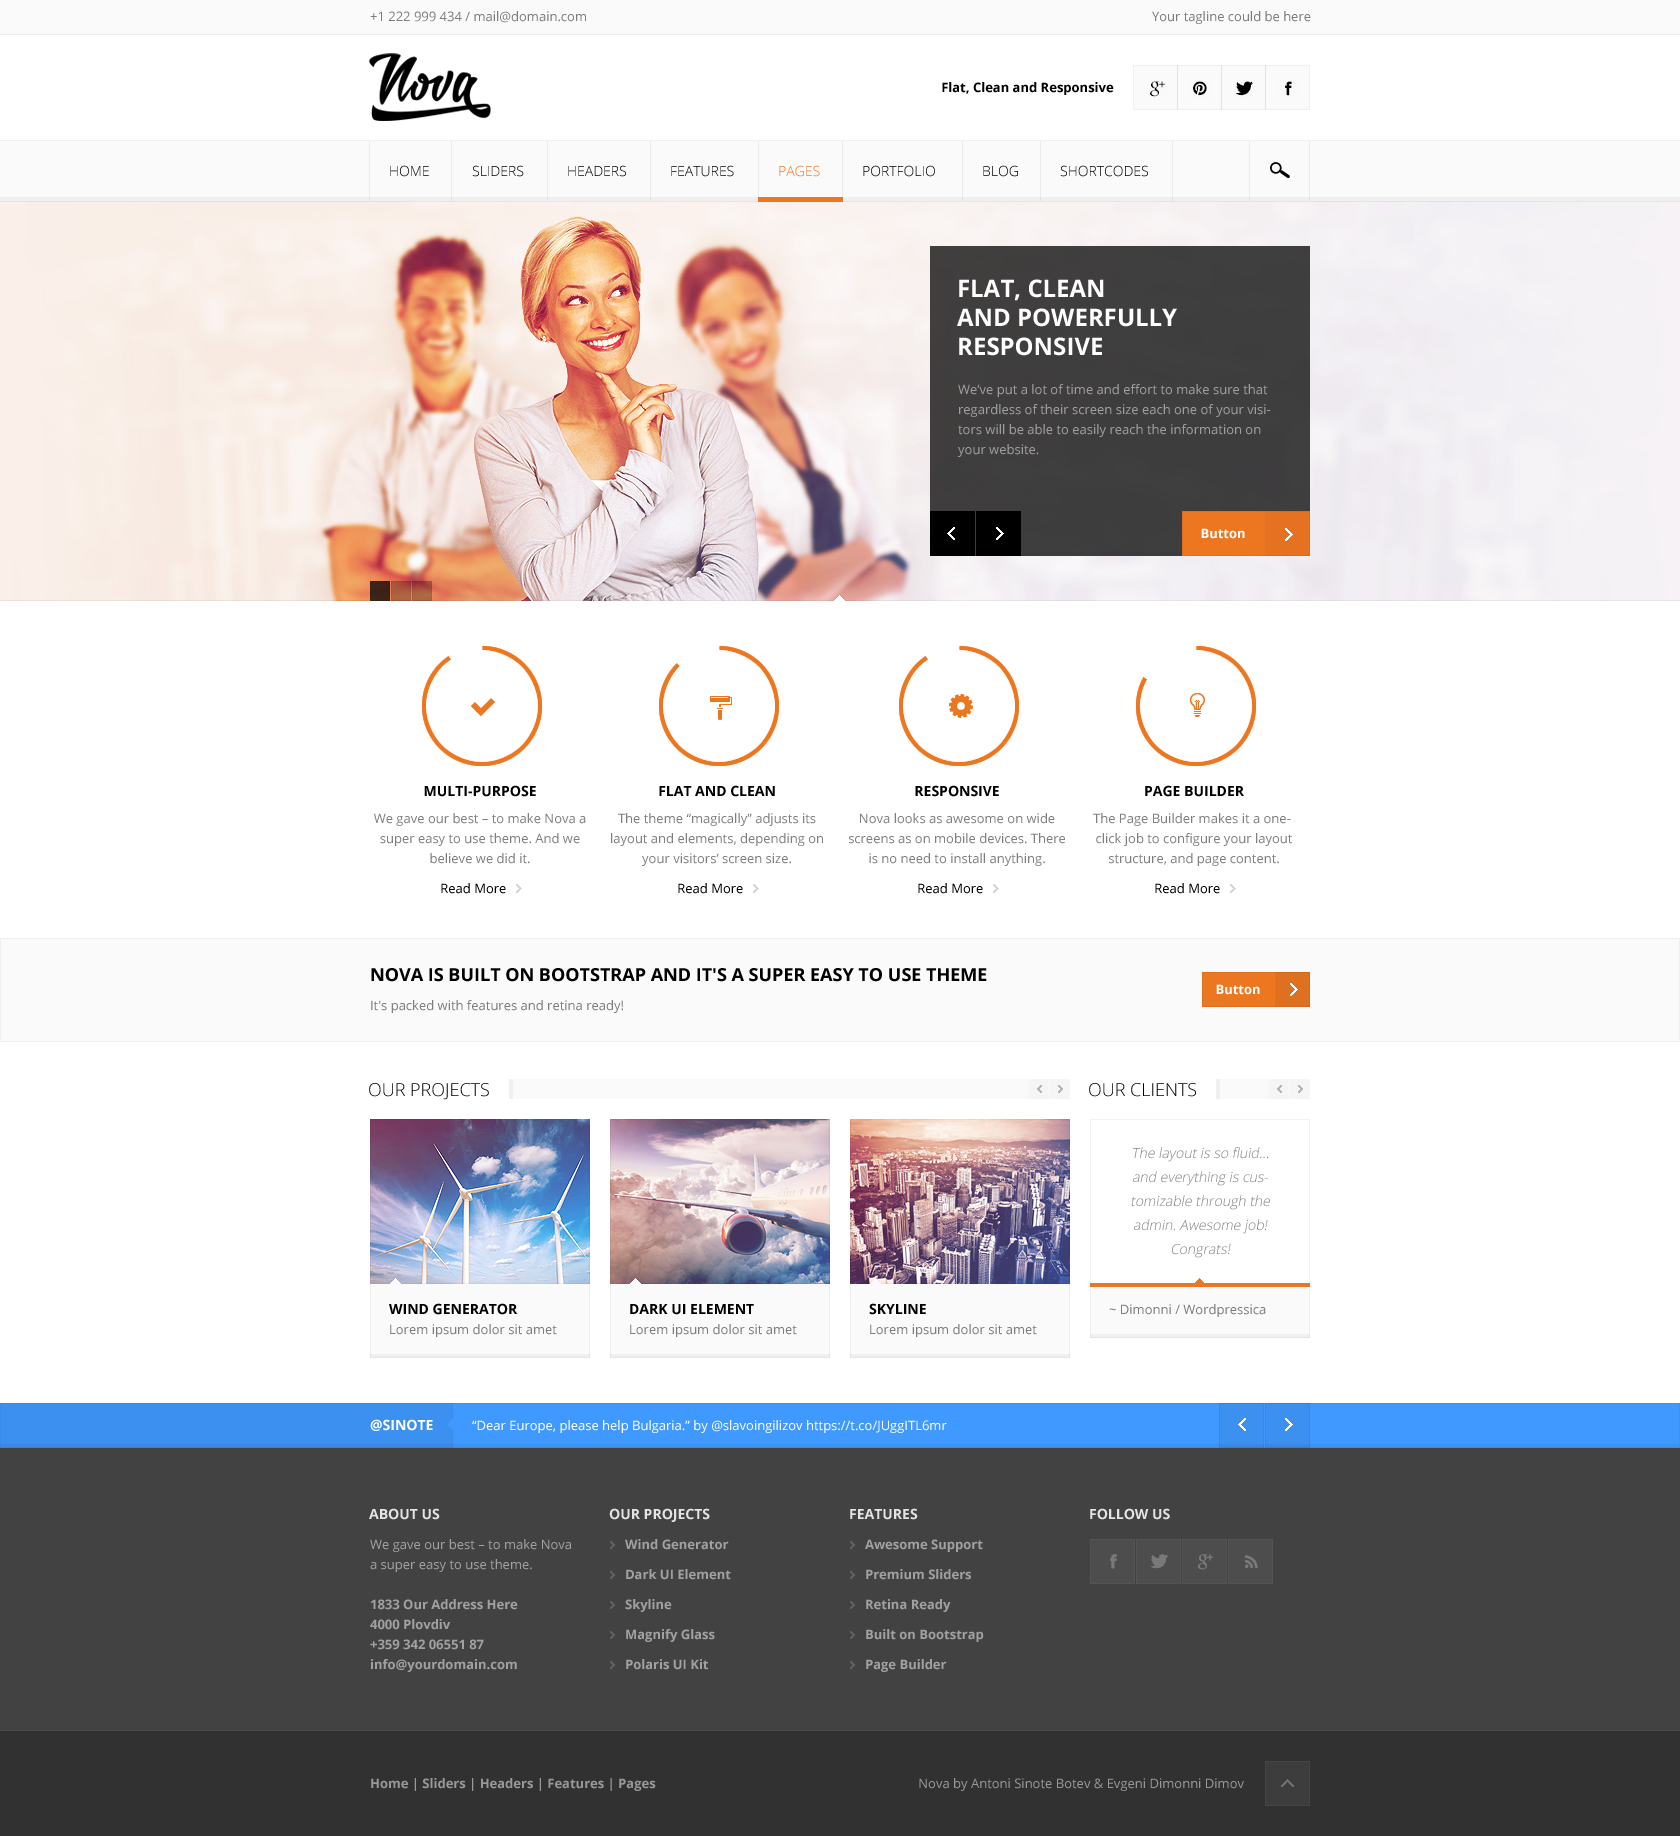 Nova flat clean responsive theme by sinote themeforest nova flat clean responsive theme reheart Image collections